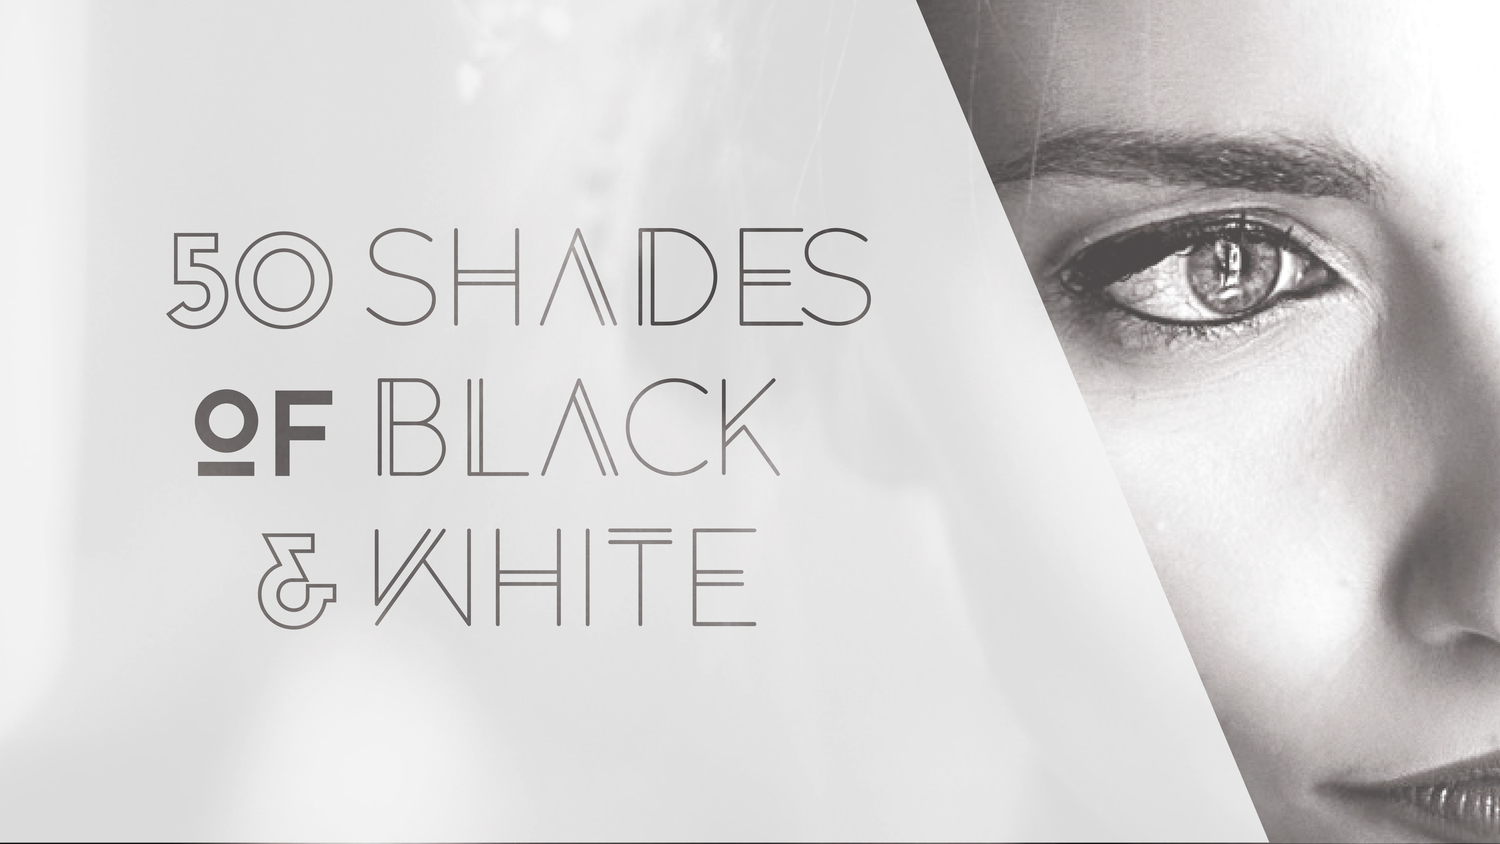 50 Shades of Black & White | Week 3: What the Bible Teaches about Same